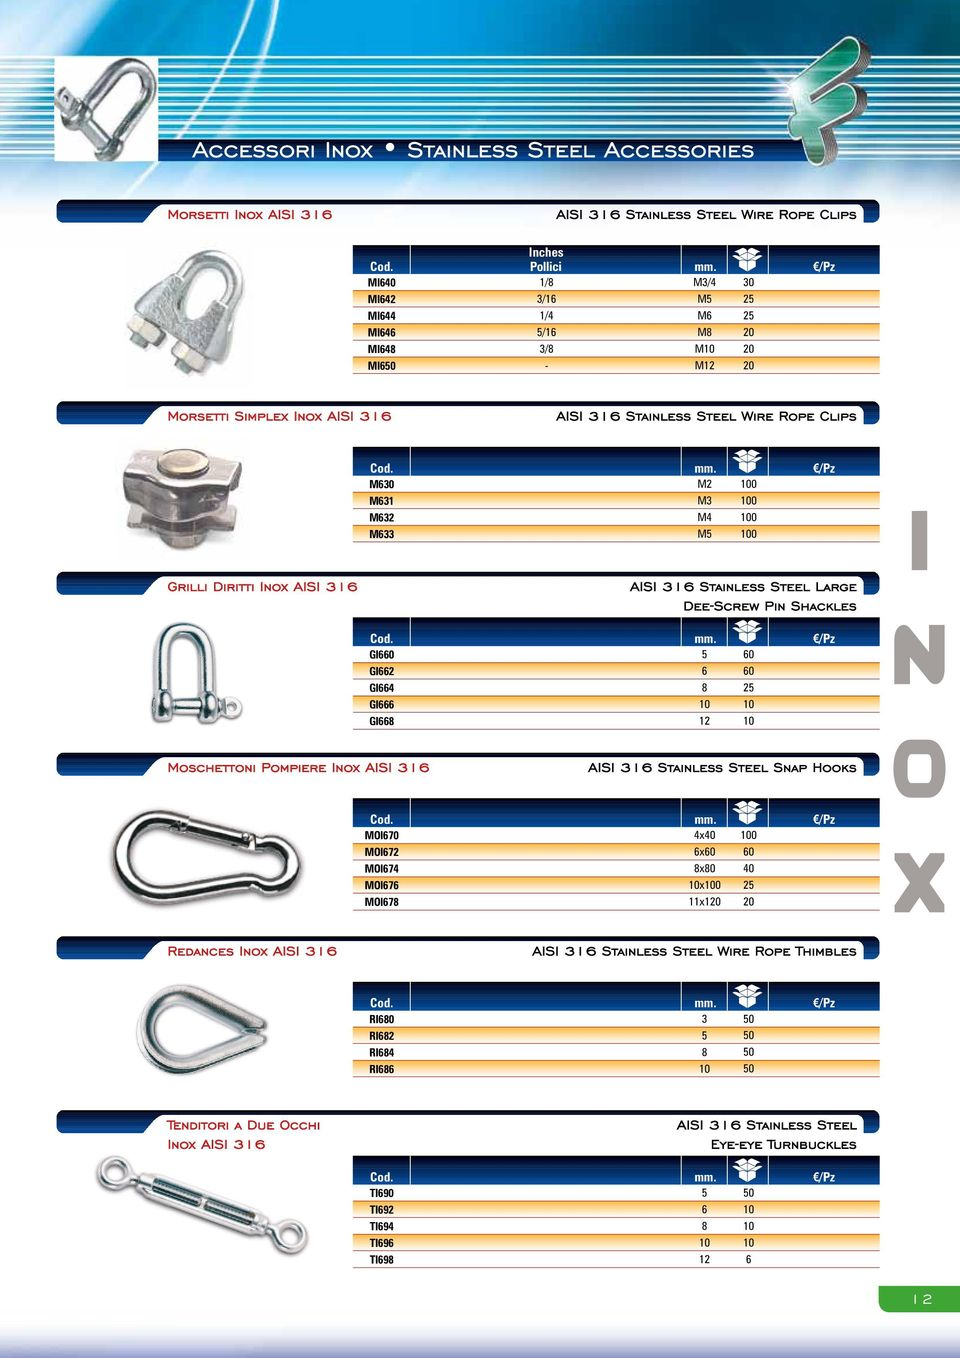 M0 M M M M M M M 00 00 00 00 Grilli Diritti Inox AISI AISI Stainless Steel Large DeeScrew Pin Shackles mm.